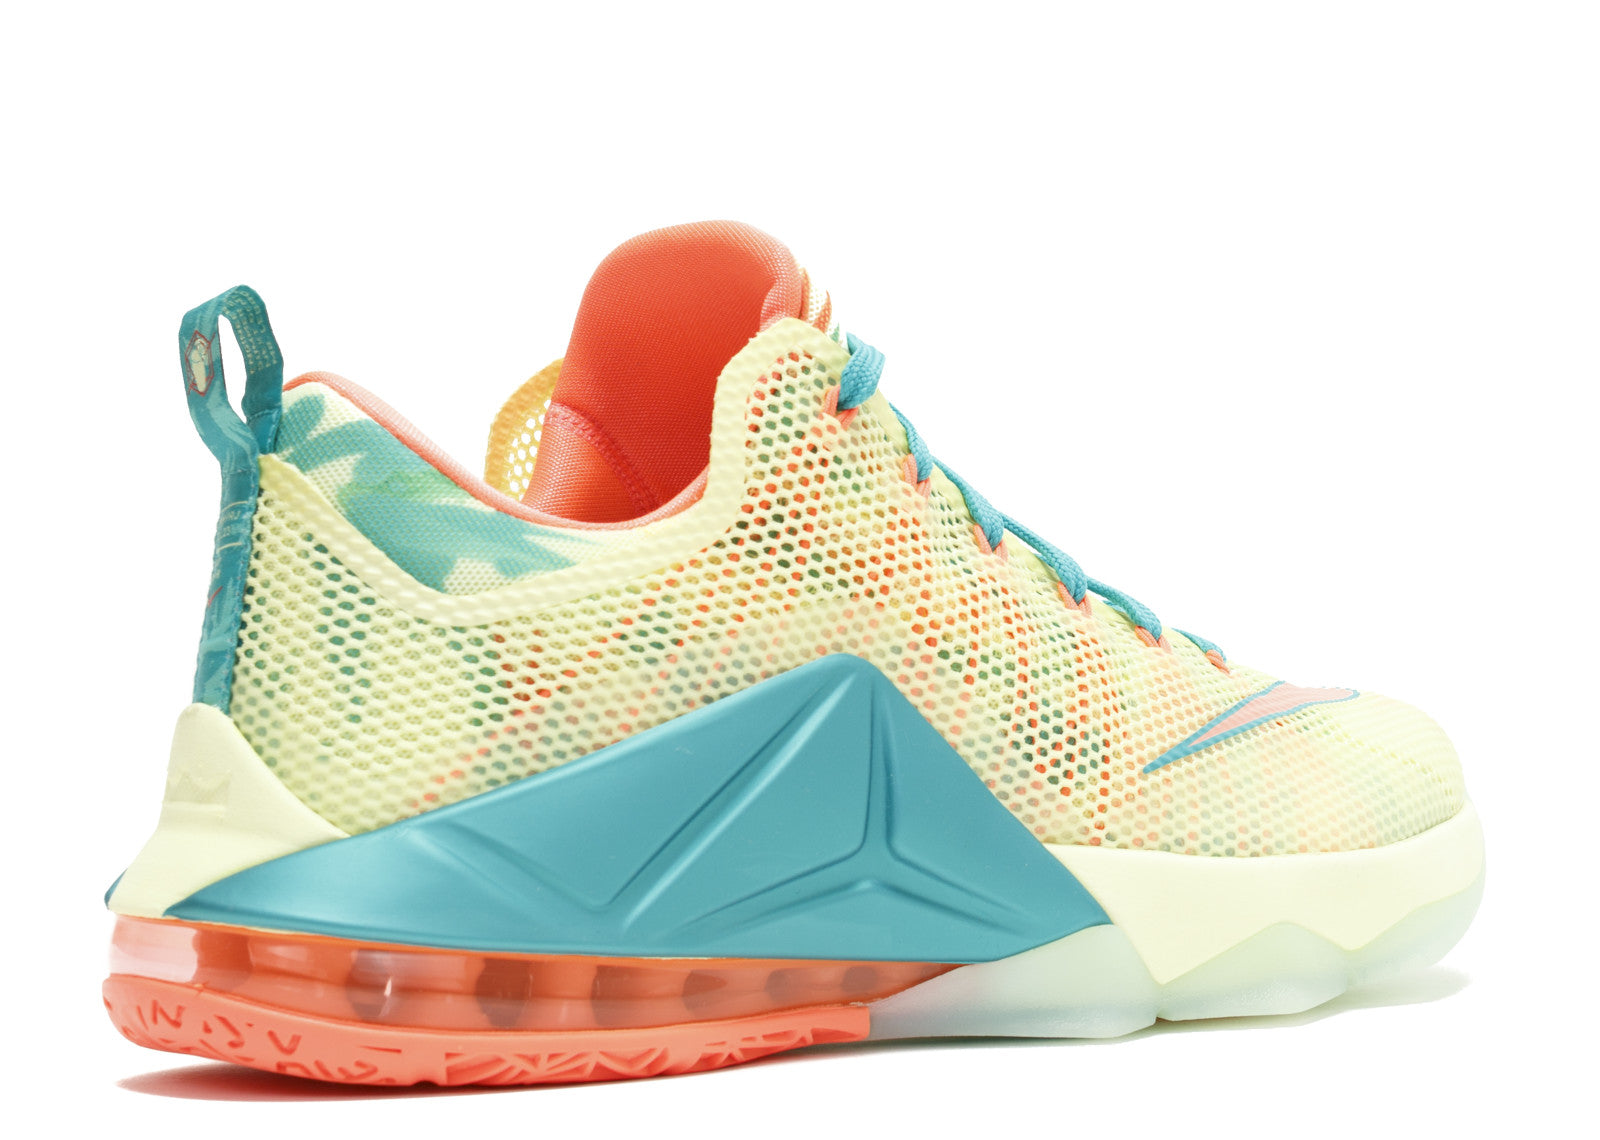 huge selection of 49ec3 7071c ... free shipping nike air lebron 12 low lebronald palmer 5027a 6509a